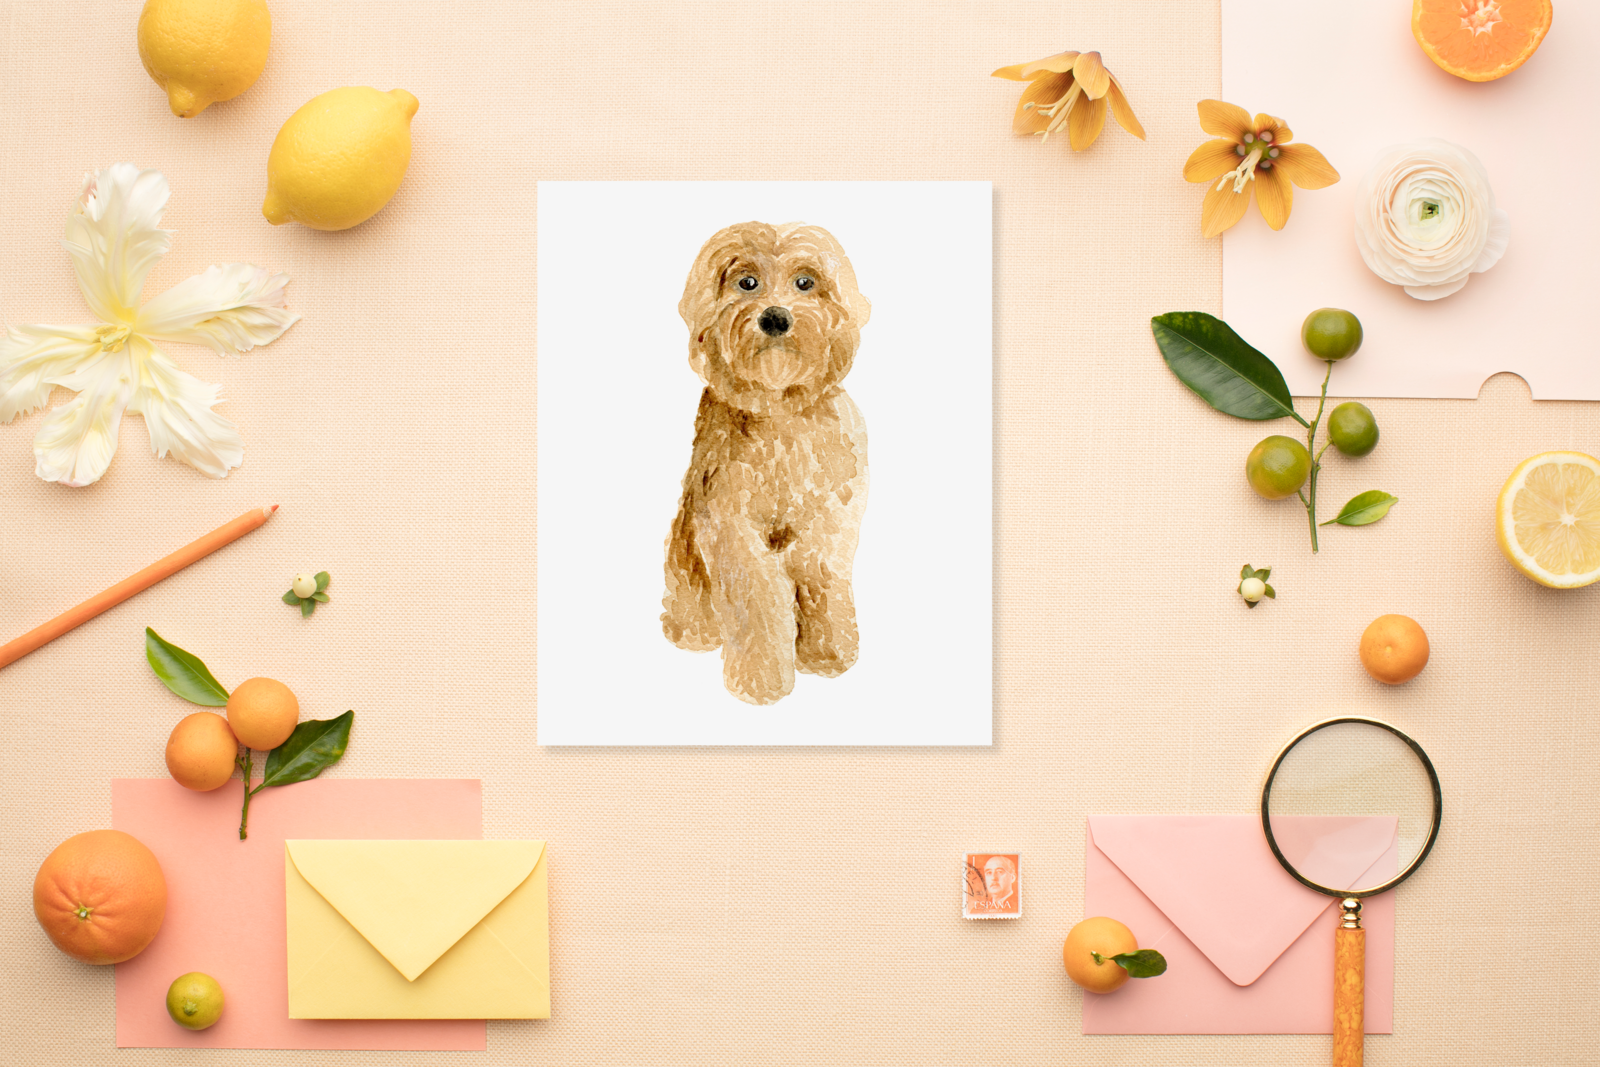 goldendoodle-pet-portrait-The-Welcoming-District